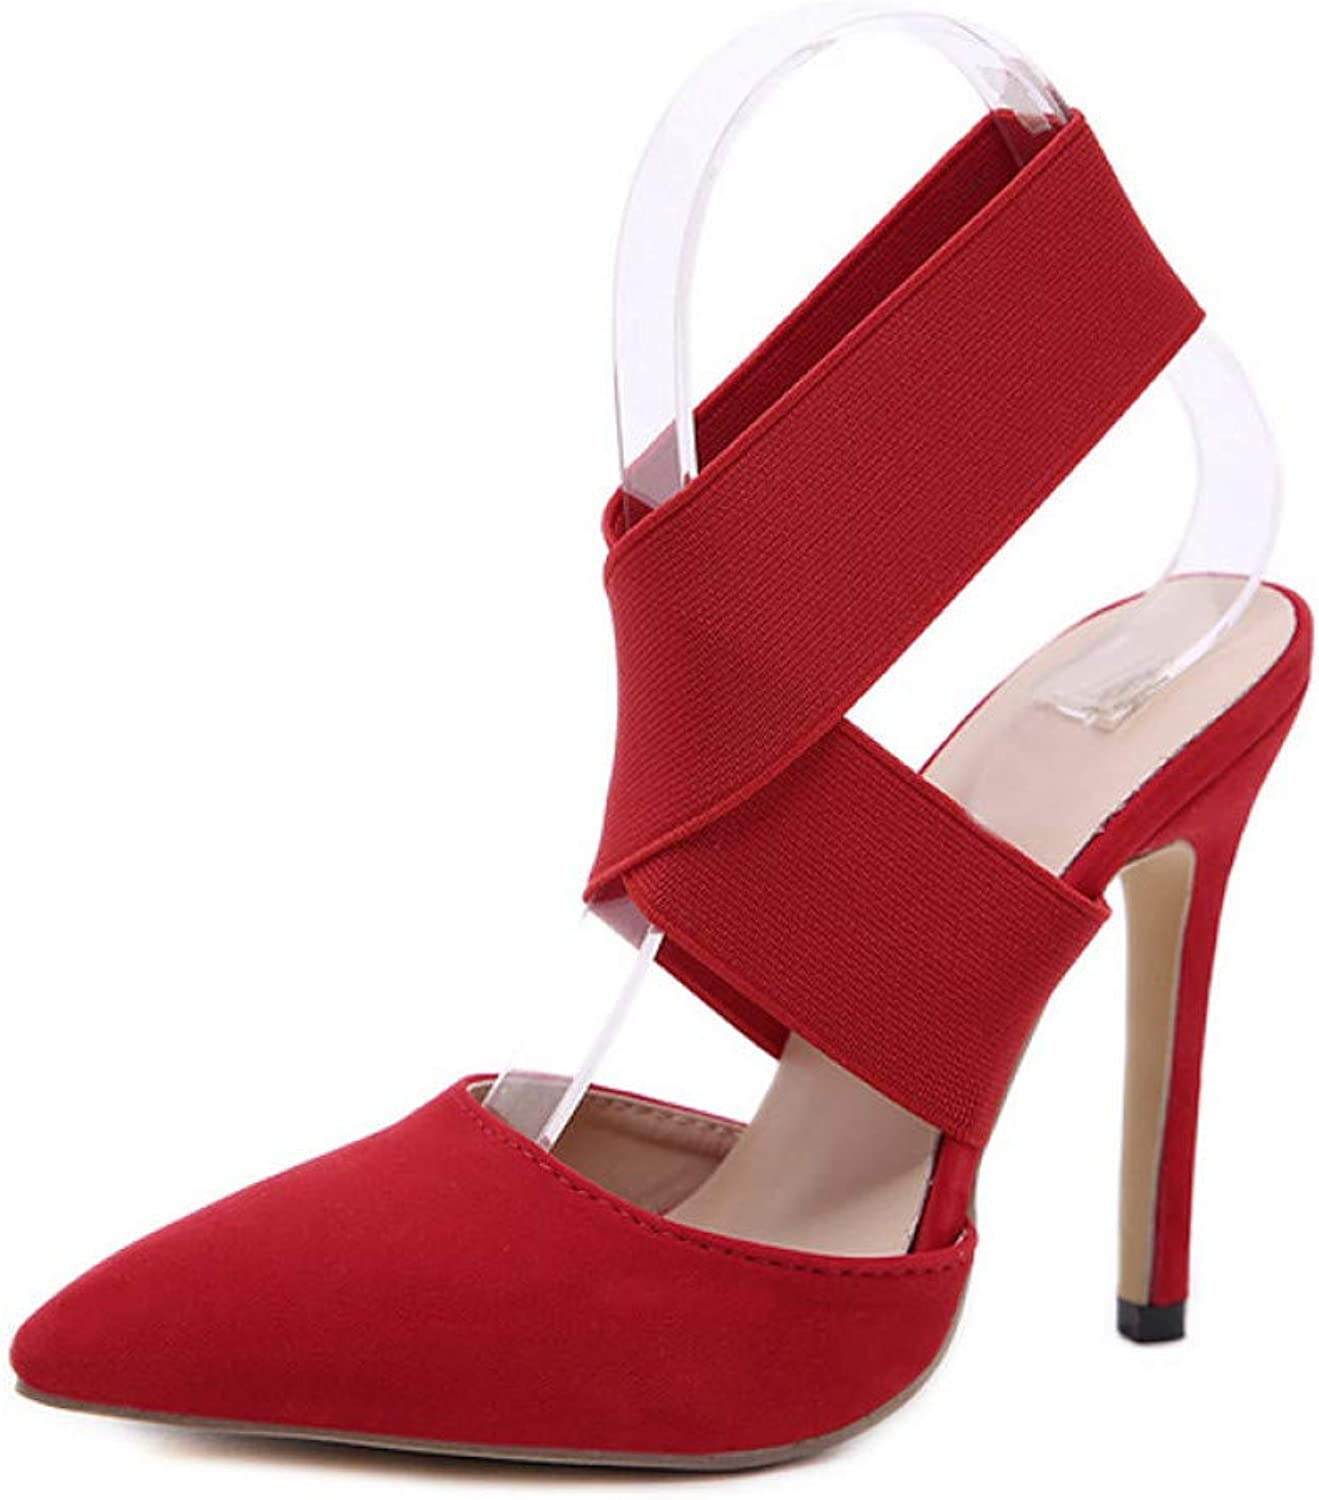 GHIJN High Heels Autumn Pumps Sandals 12CM Fashion Pointed Toe Red Black Wedding Thin Heel Woman shoes Size 3540